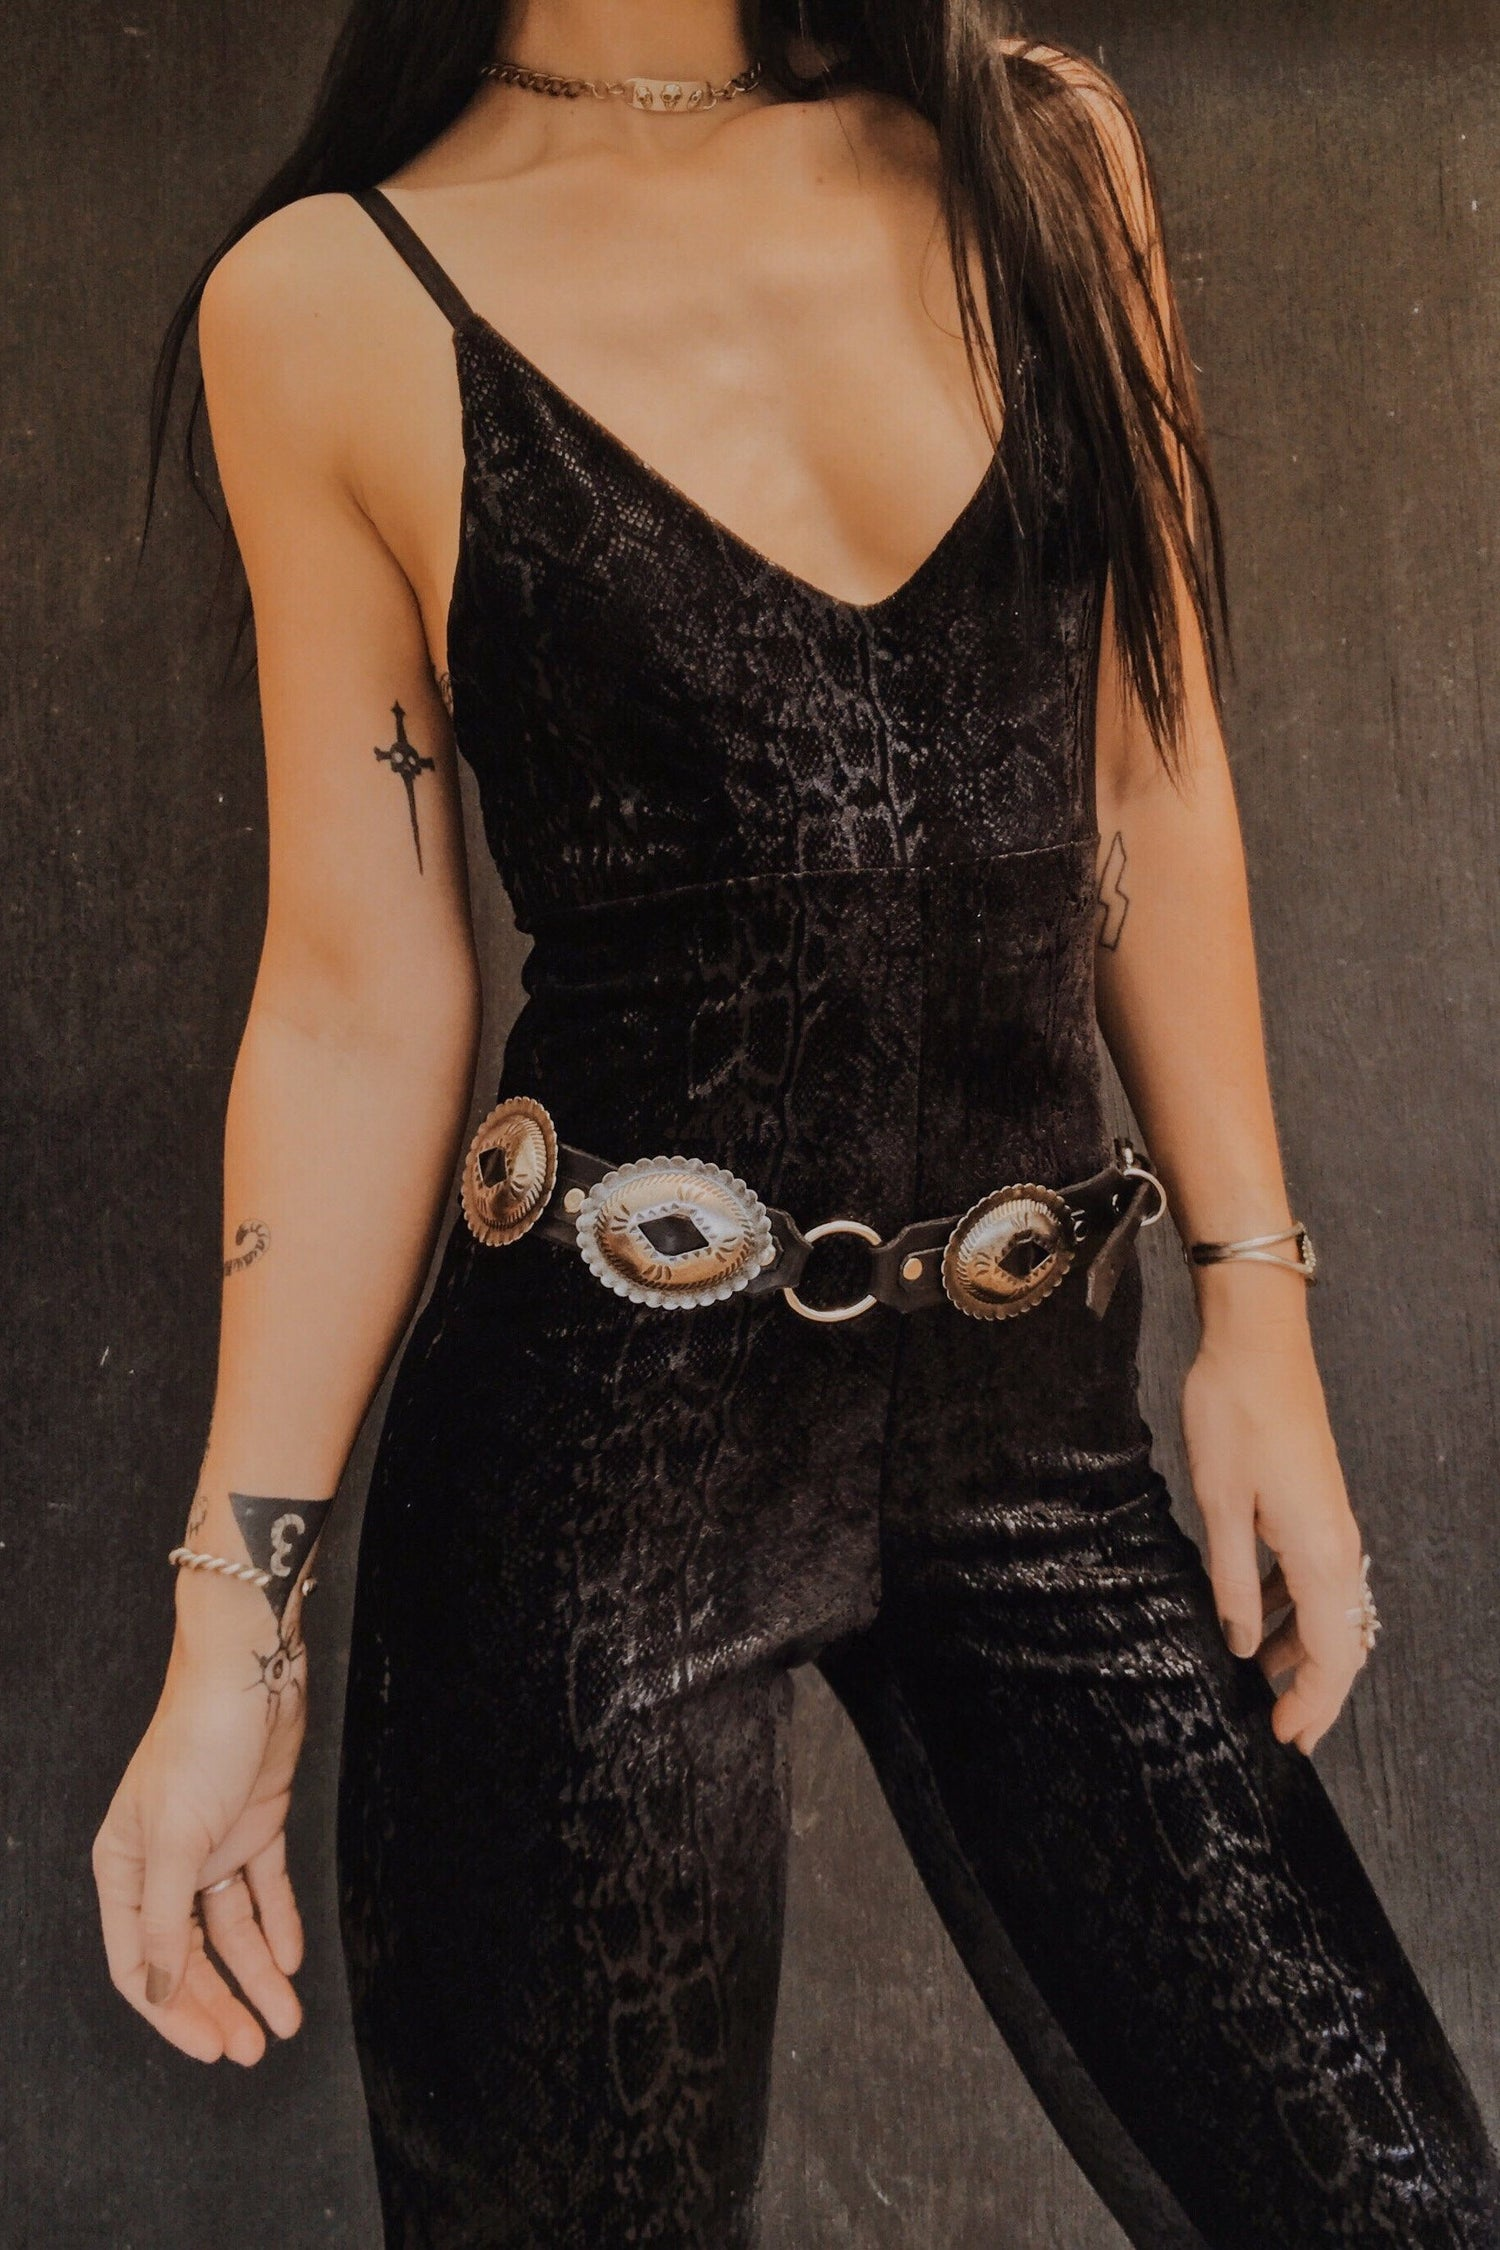 Black Leather Slotted Concho Belt by Hell Bent Leather・Various Sizes Available, Accessories, Hell Bent Leather, BACKBITE